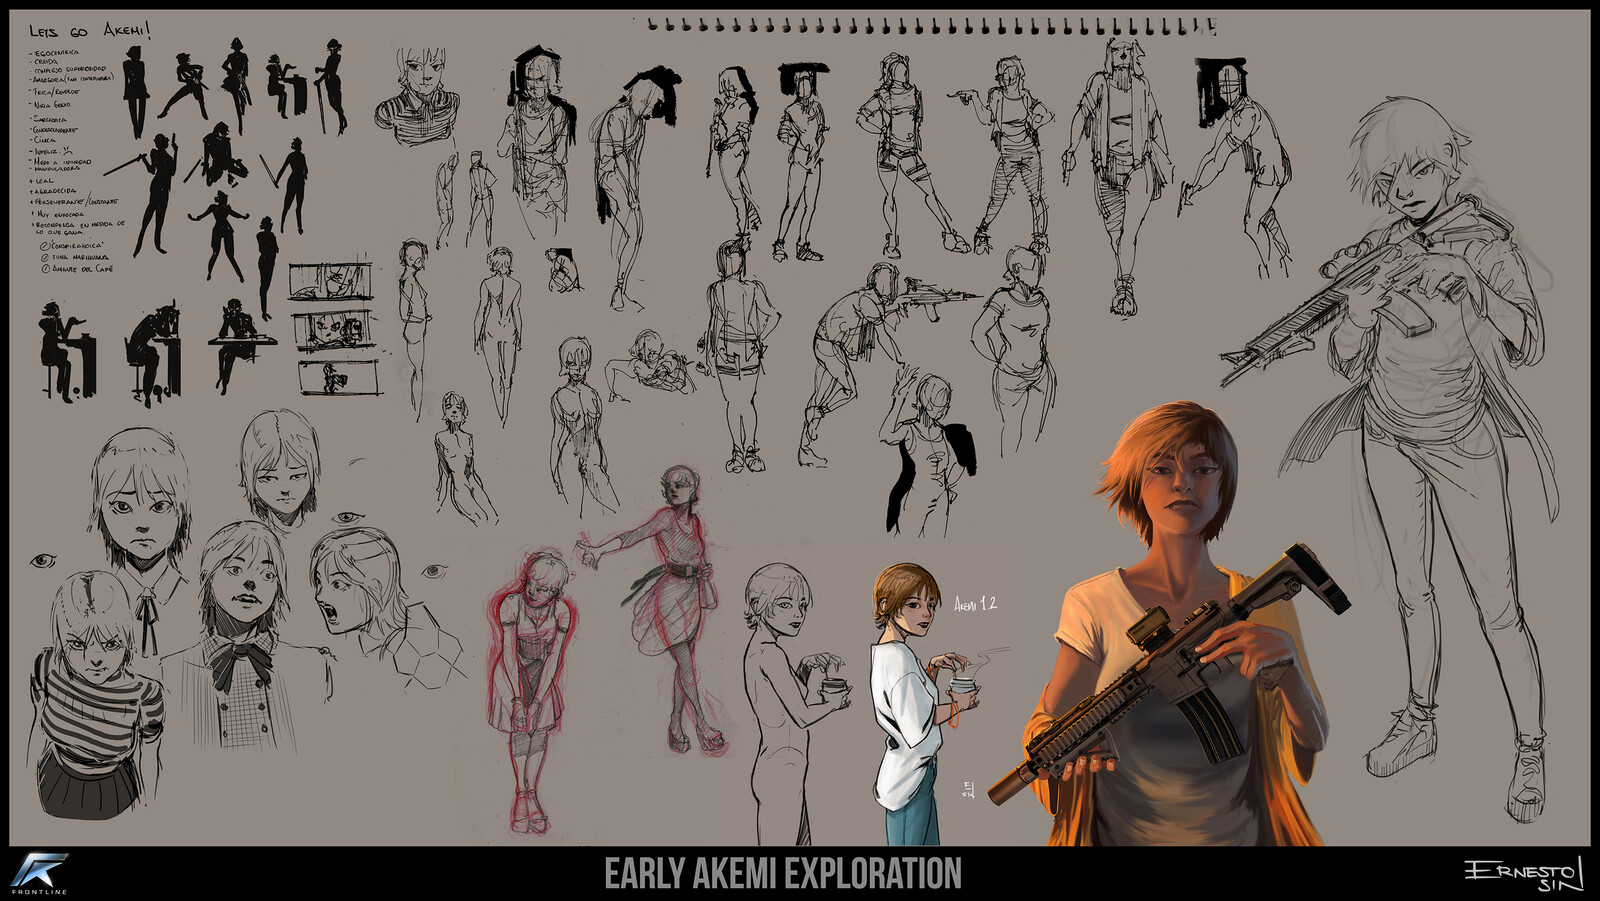 many sketches and early exploration.